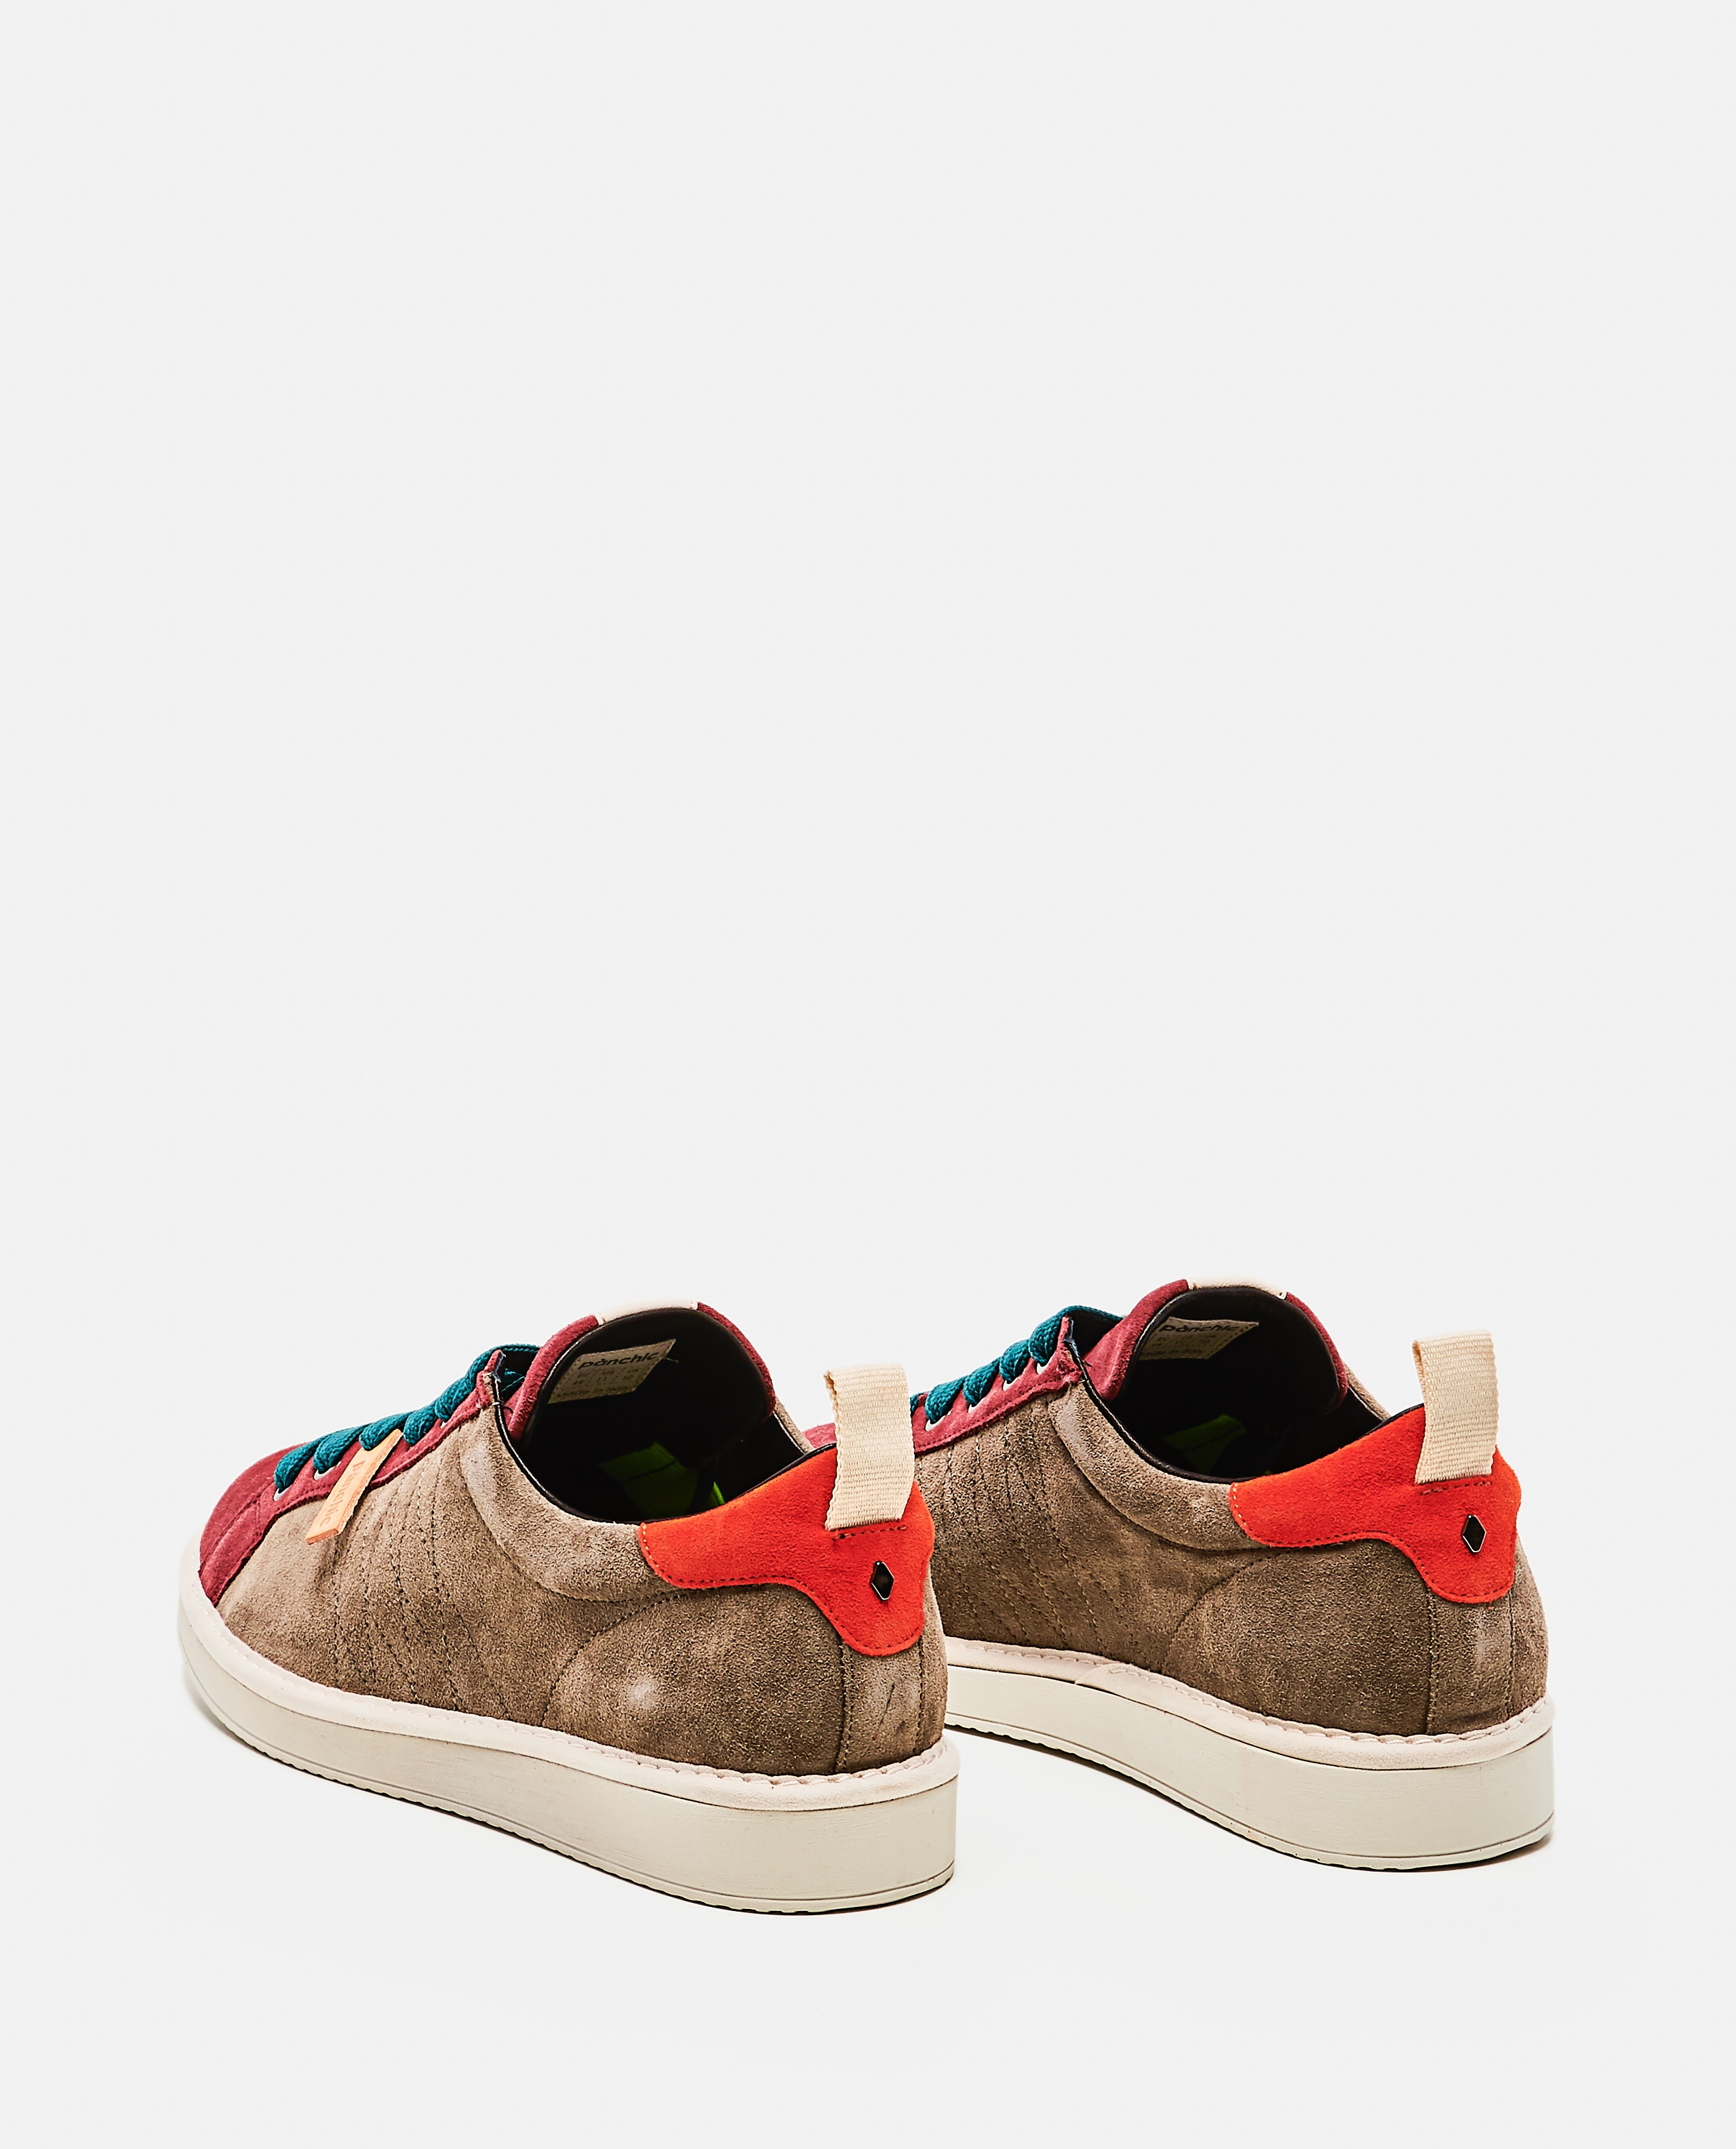 Sneakers in pelle Uomo Panchic 000278450041046 3